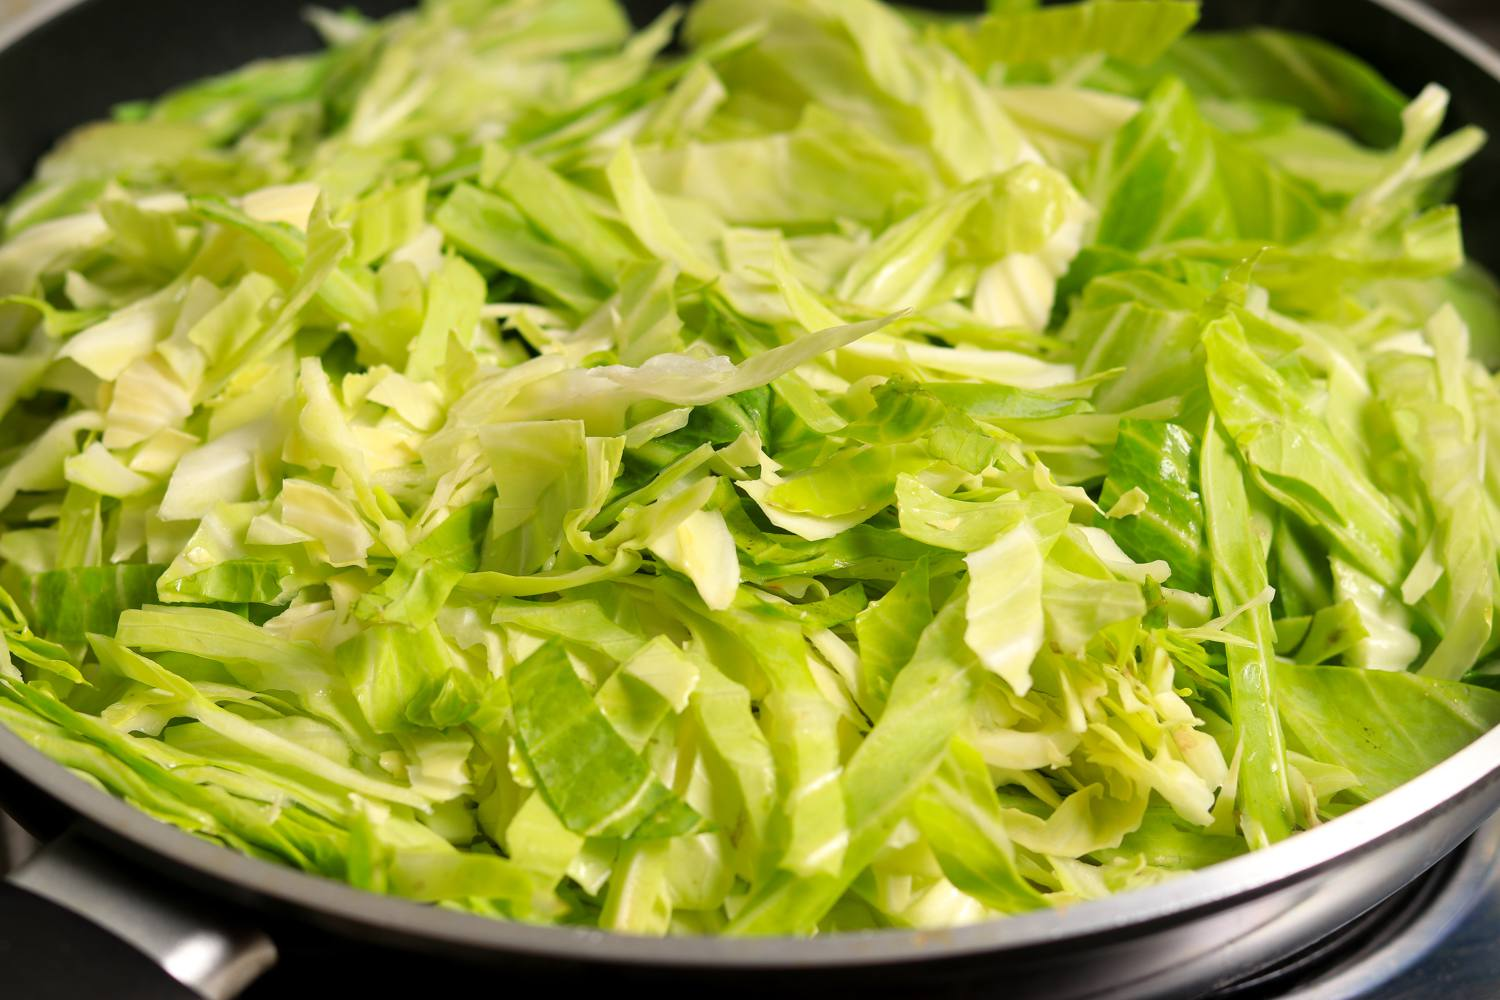 Stir in salt, cabbage, and butter